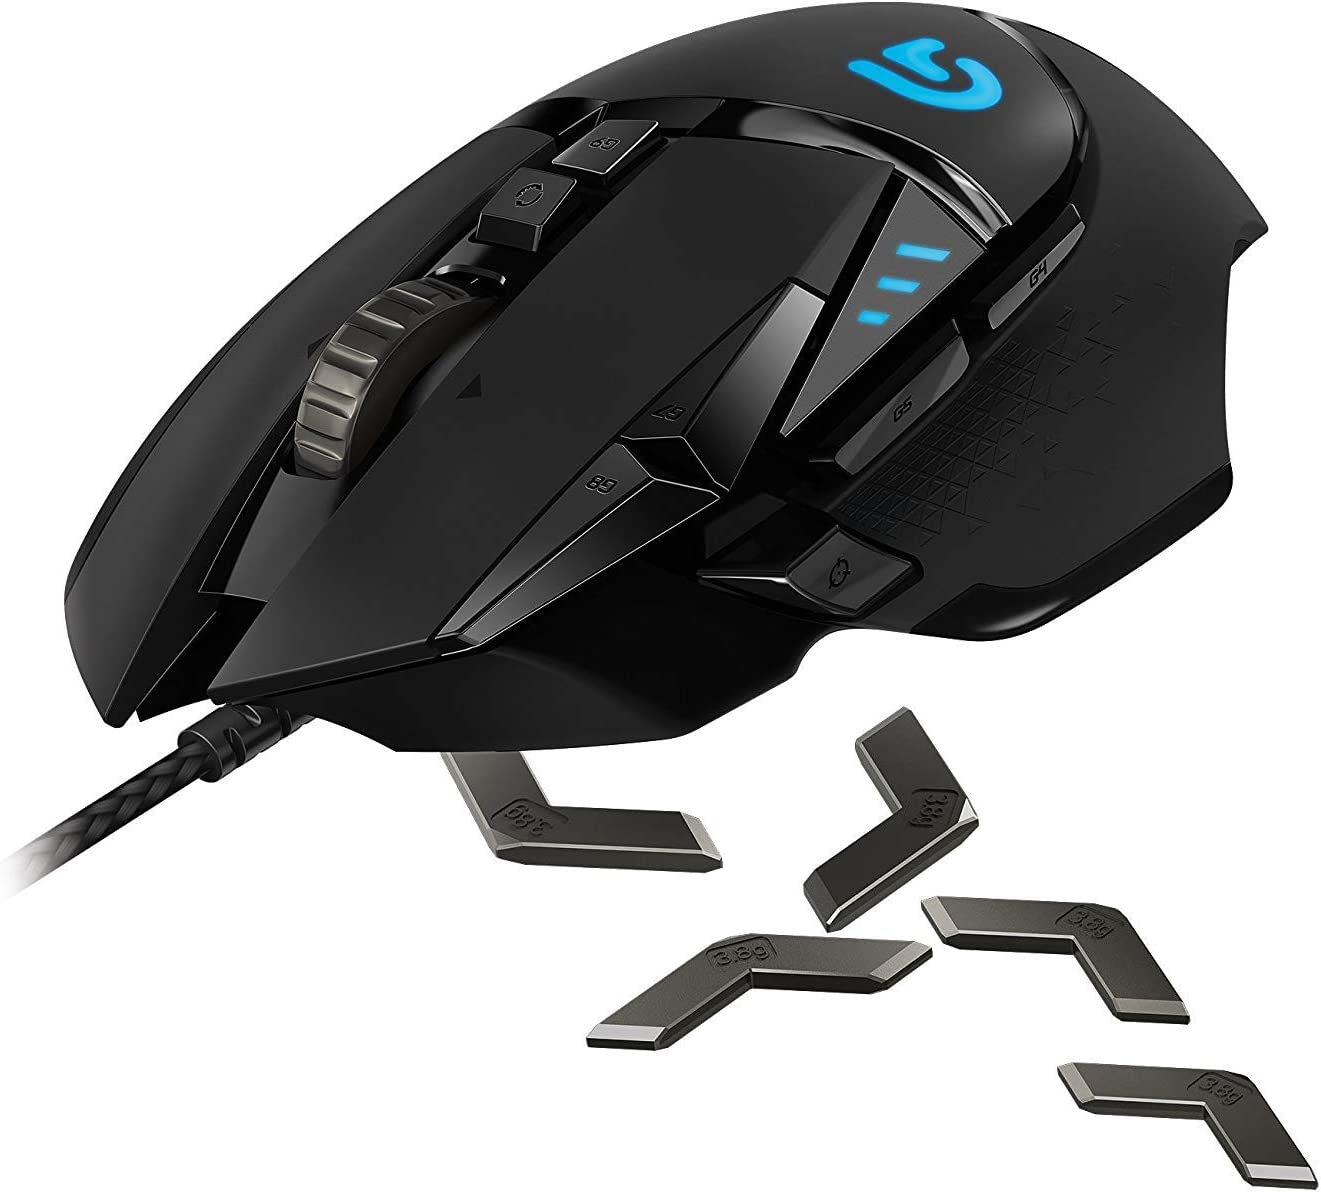 Logitech G502 (Proteus Core) Gaming mice